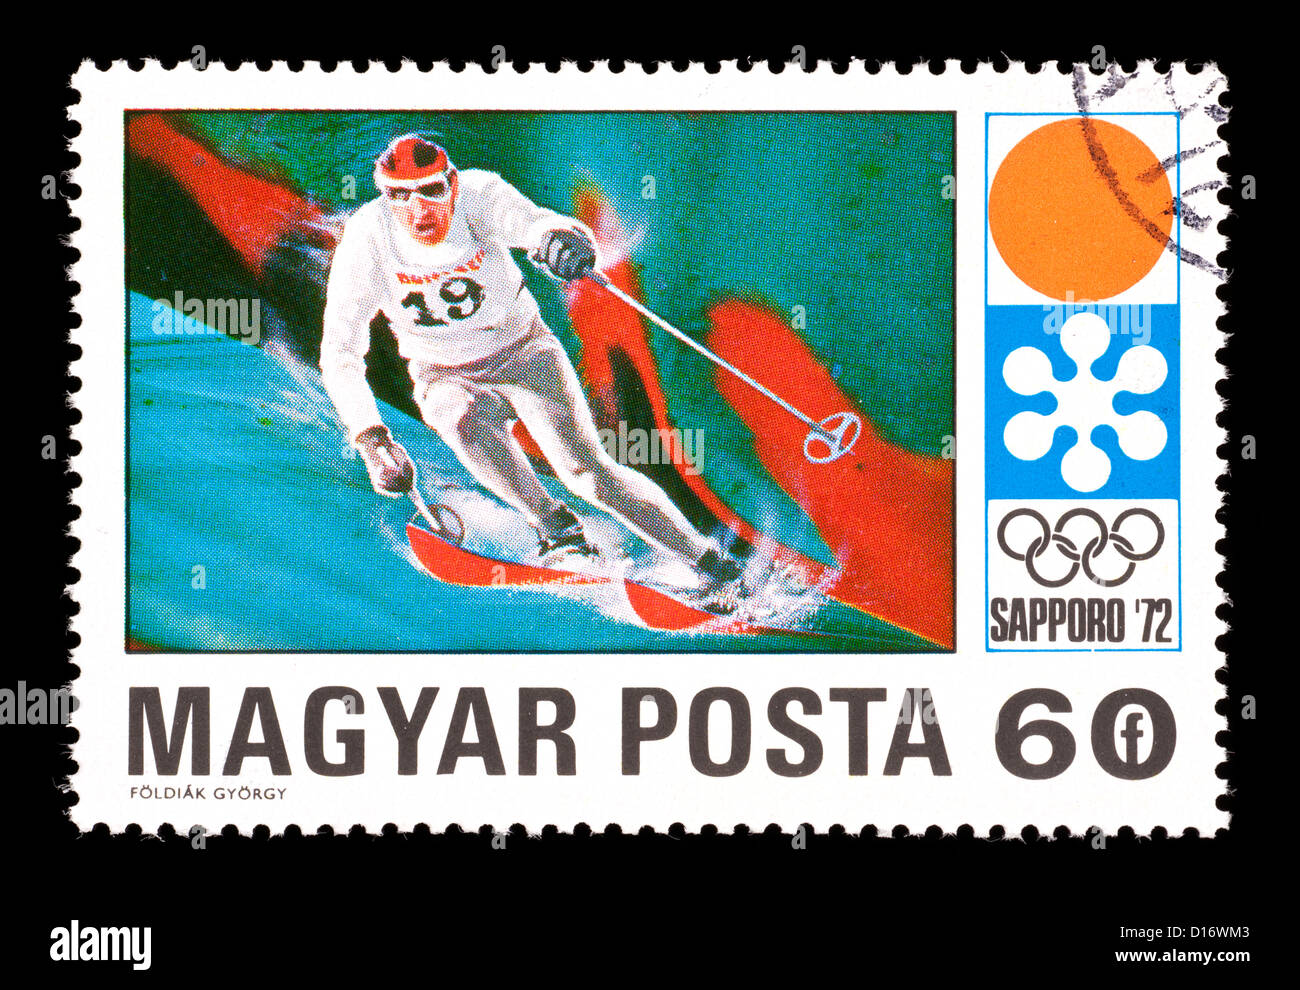 Postage stamp from Hungary depicting a downhill skier, issued for the 1972 Winter Olympic Games in Sapporo, Japan. Stock Photo